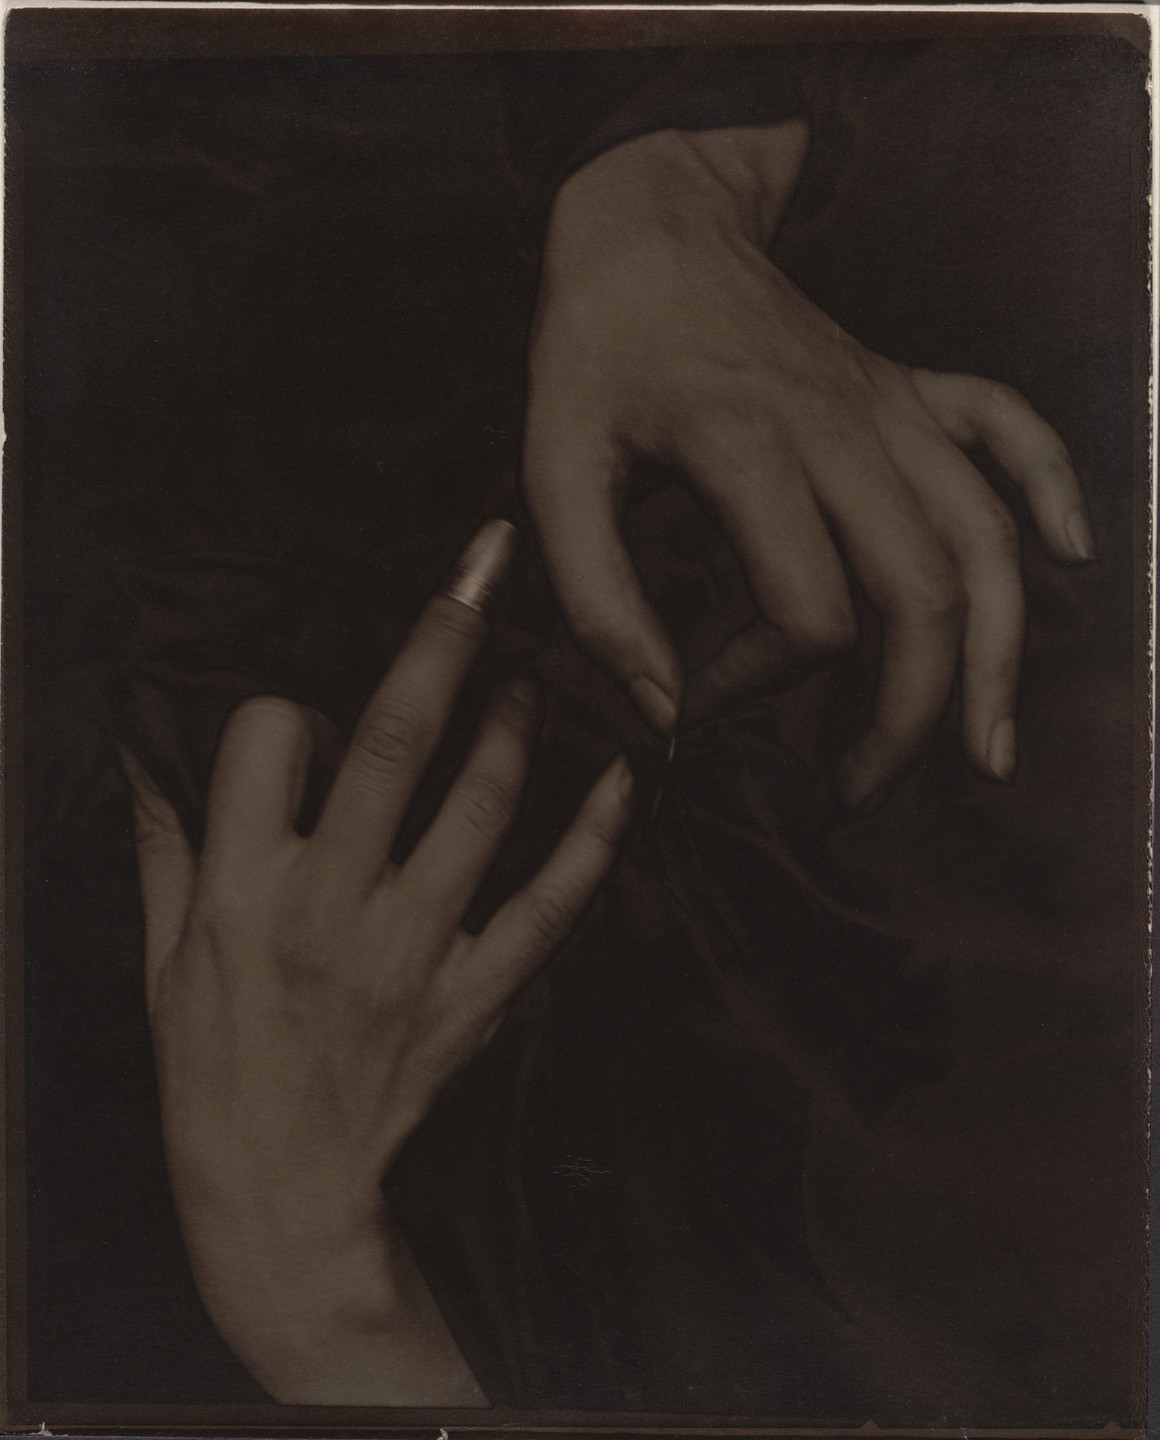 Alfred Stieglitz. Georgia O'Keeffe - Hands and Thimble. 1919